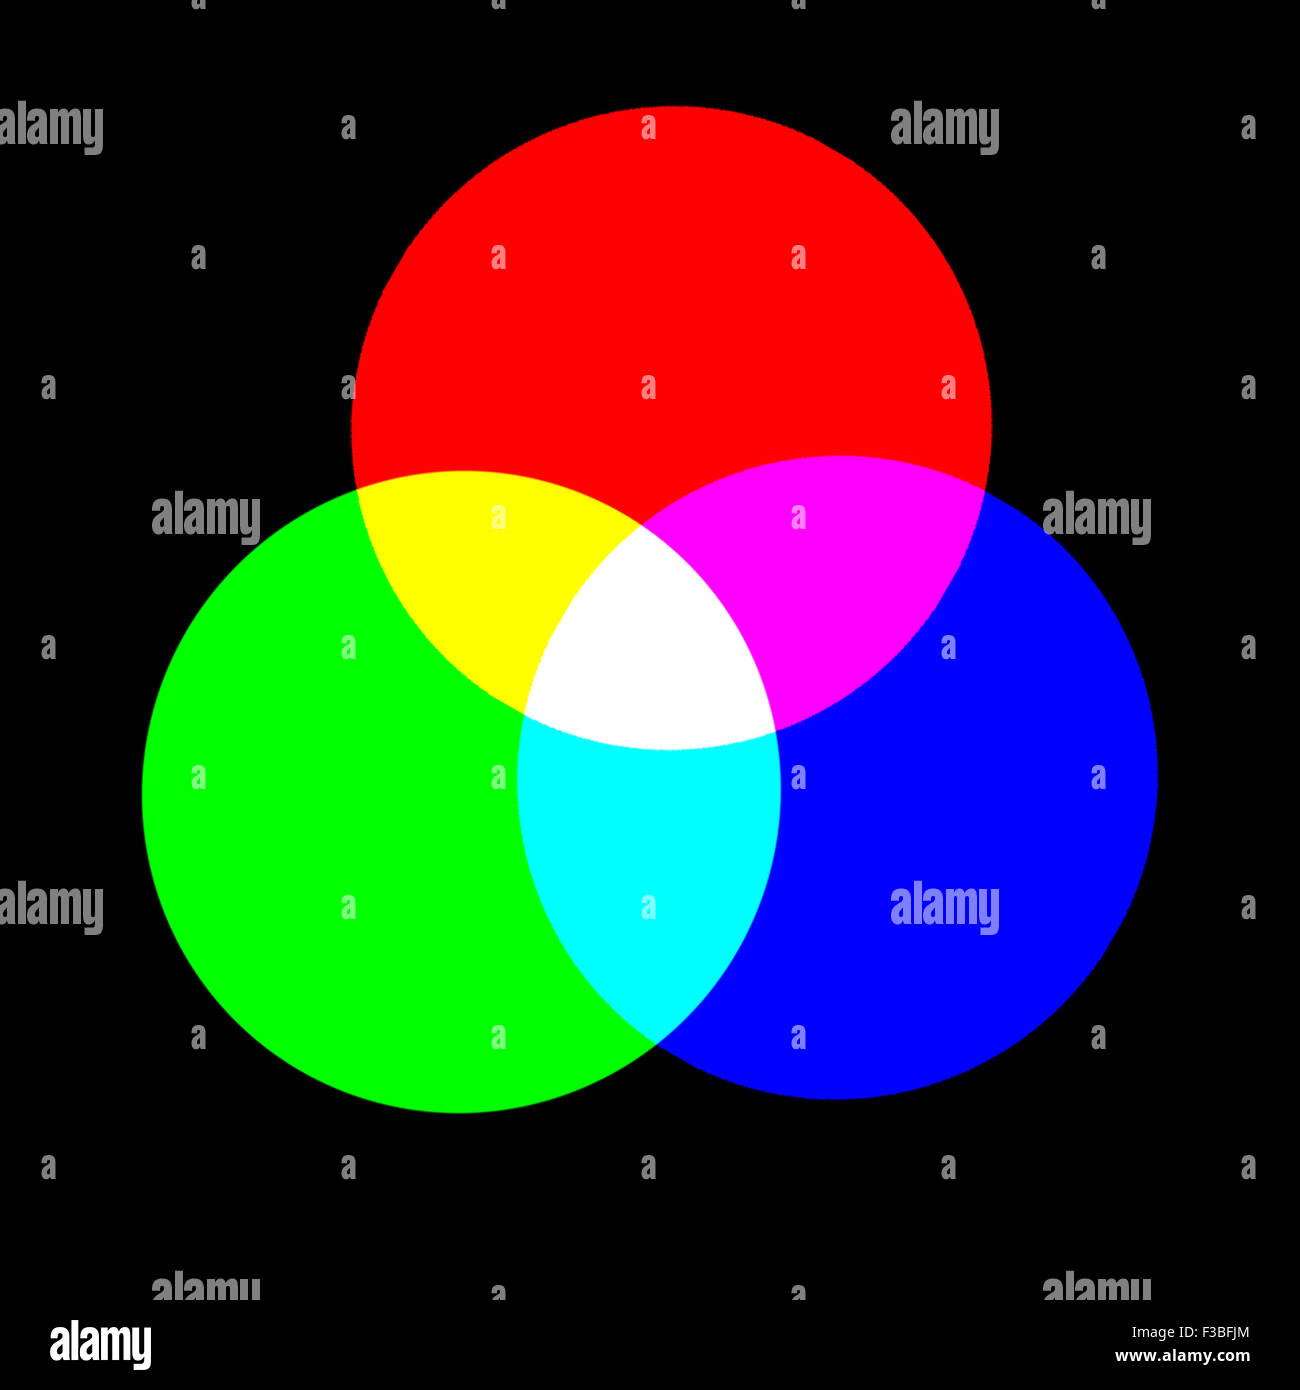 Color Wheel Made Up Of Three Primary Colors Red Green And And Blue